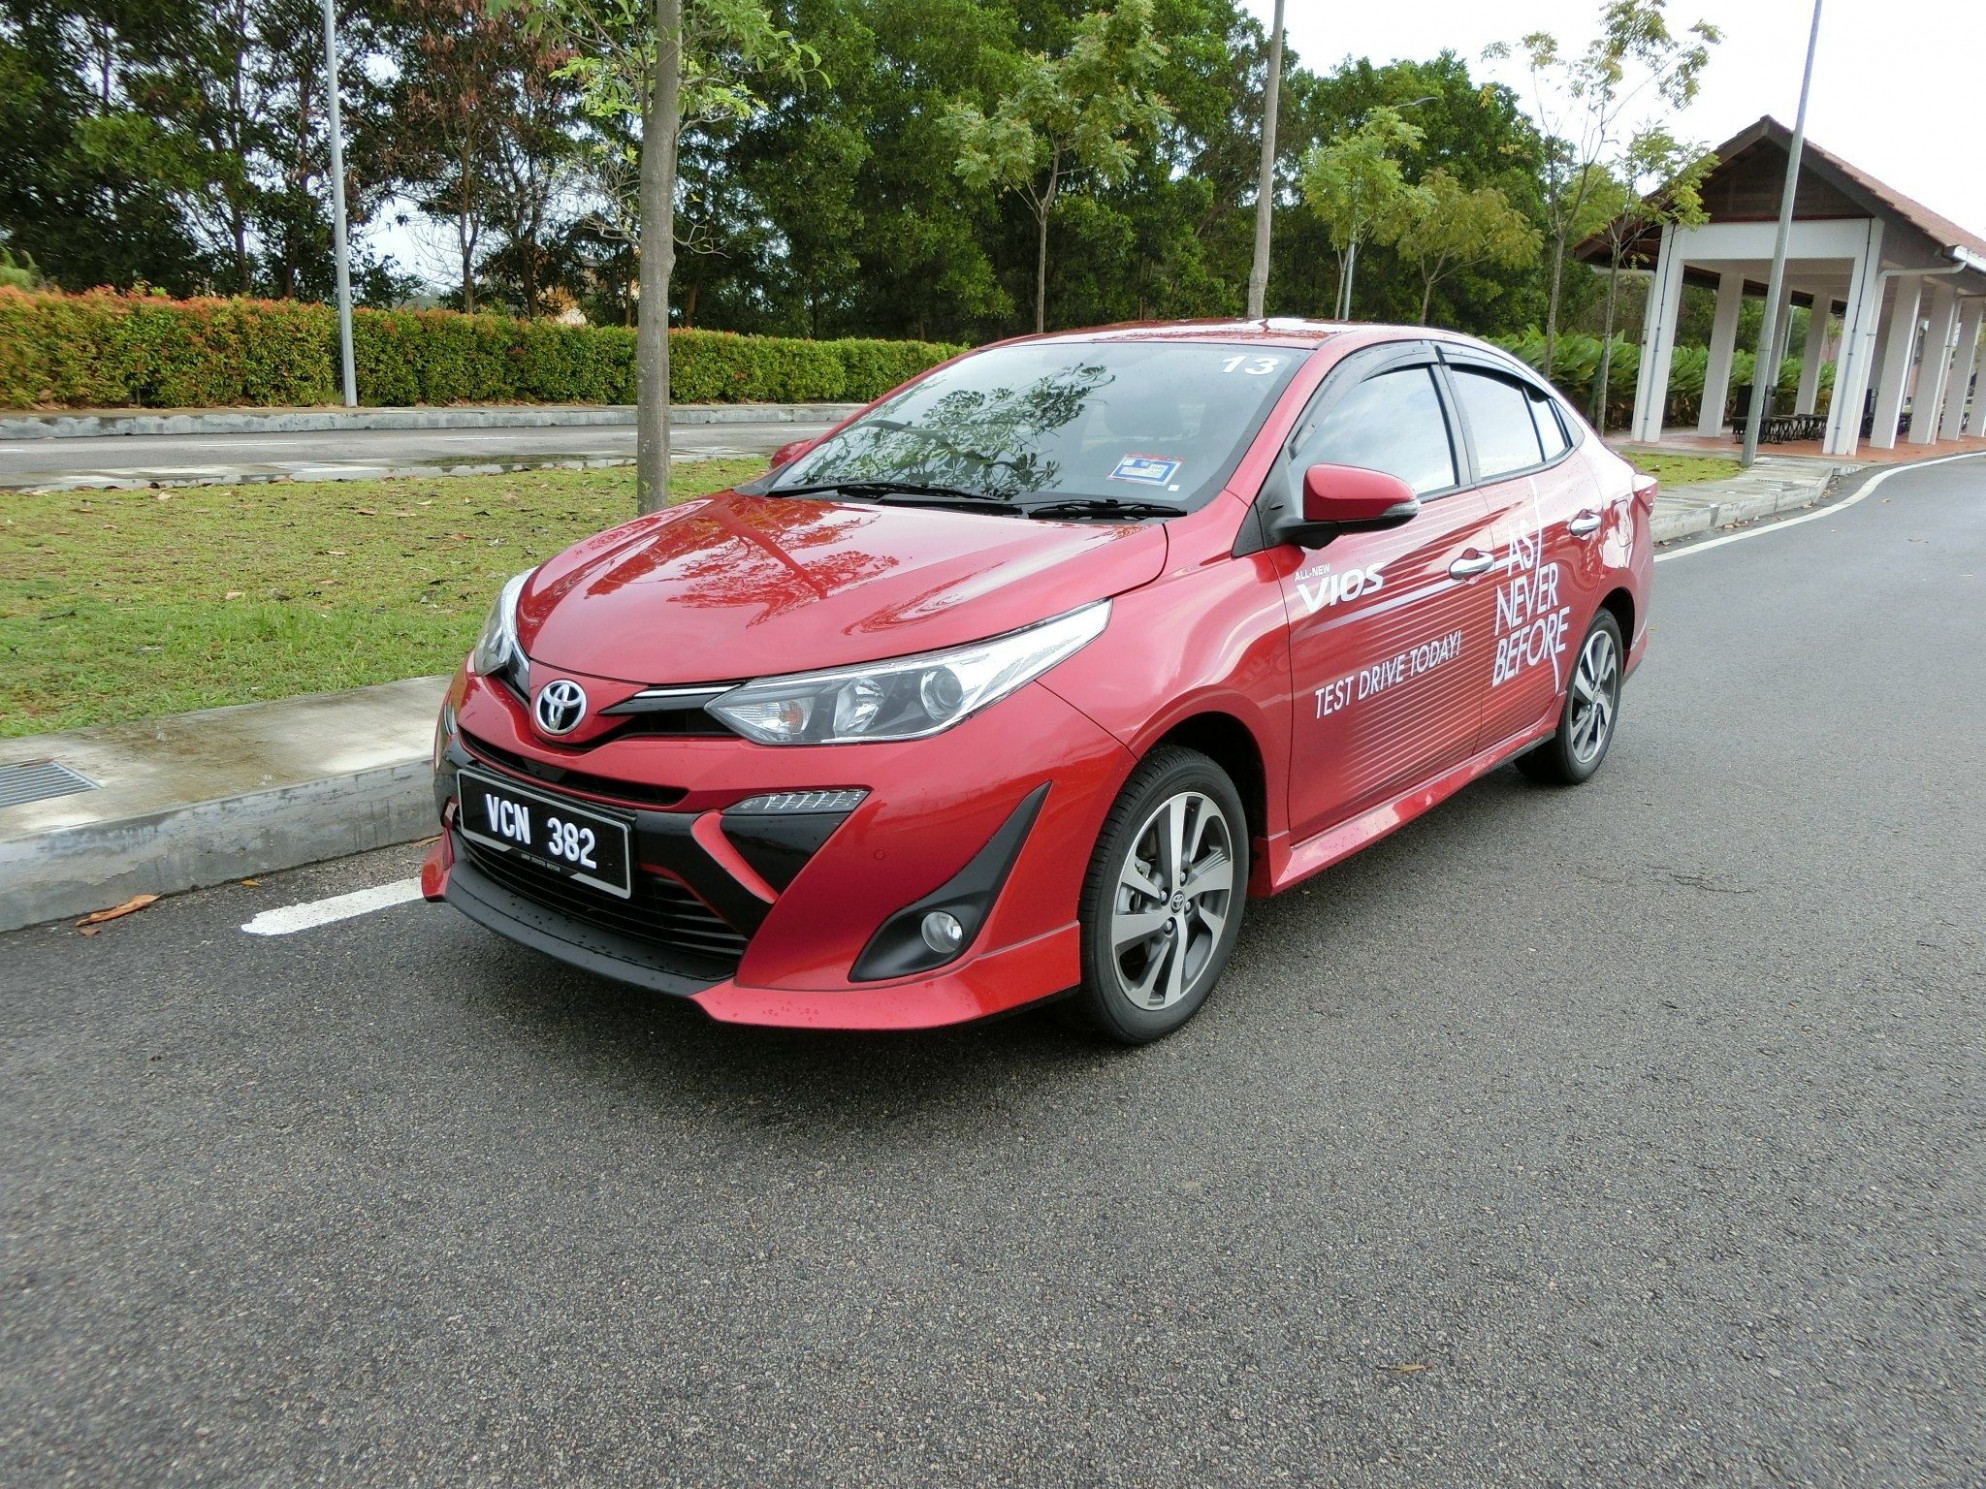 Toyota Vios 10 Malaysia Price Review and Specs (With images ..